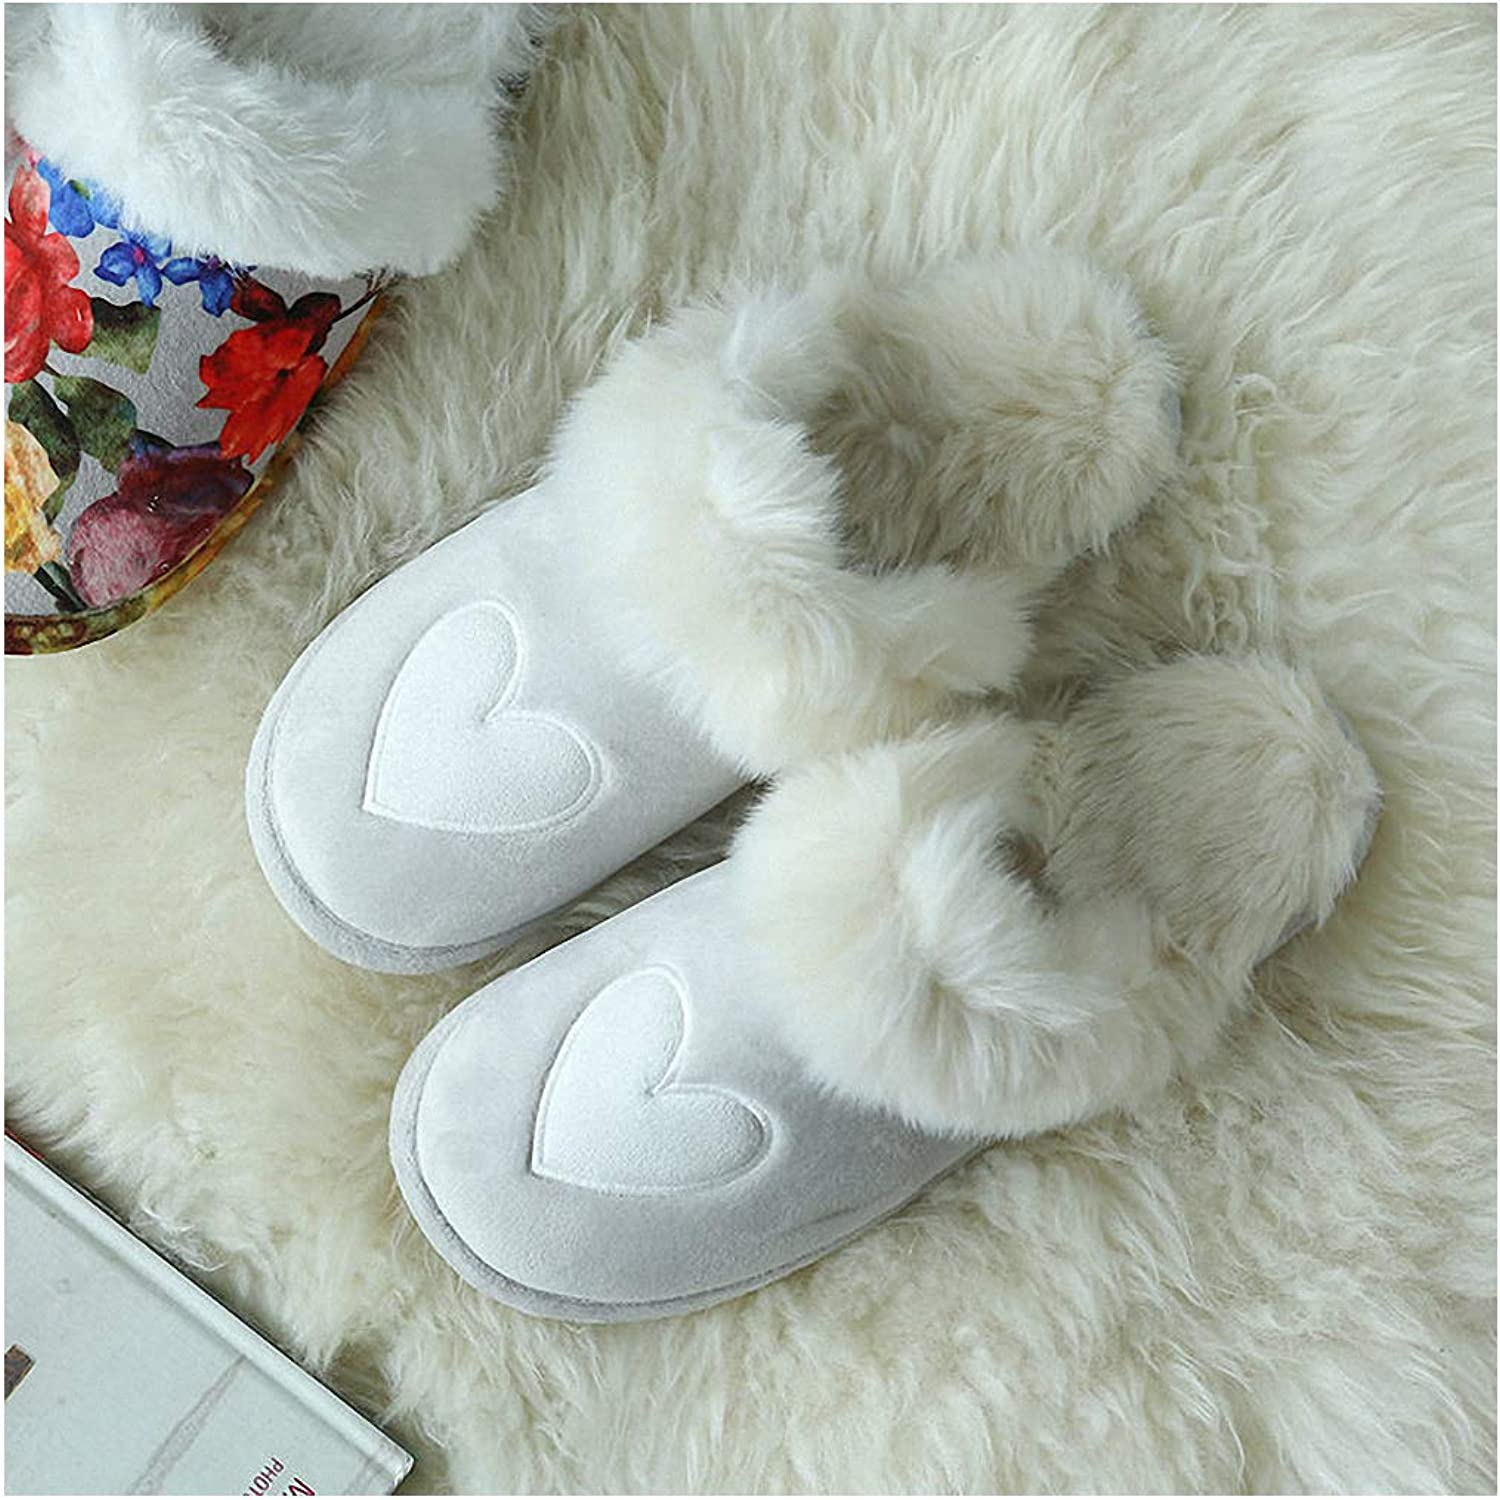 Womens Slippers Large Size Couples House Slippers for Men Women Winter Warm Faux Suede Fur Indoor Furry Home shoes Leopard Print Bedroom Slipper Heart-Shaped 14